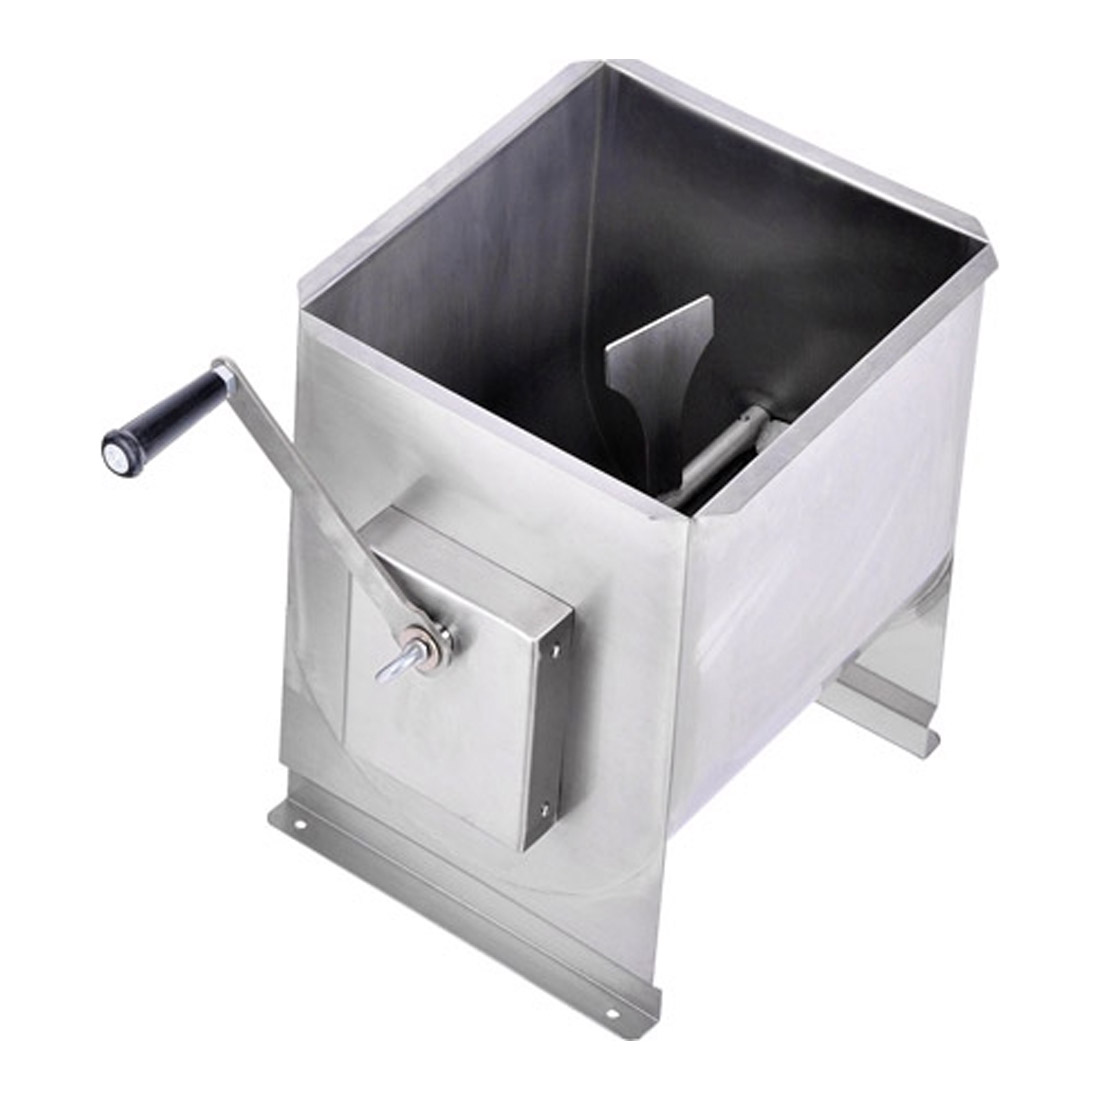 Meat Mixer (fit with TC 8 meat grinder) - FME02